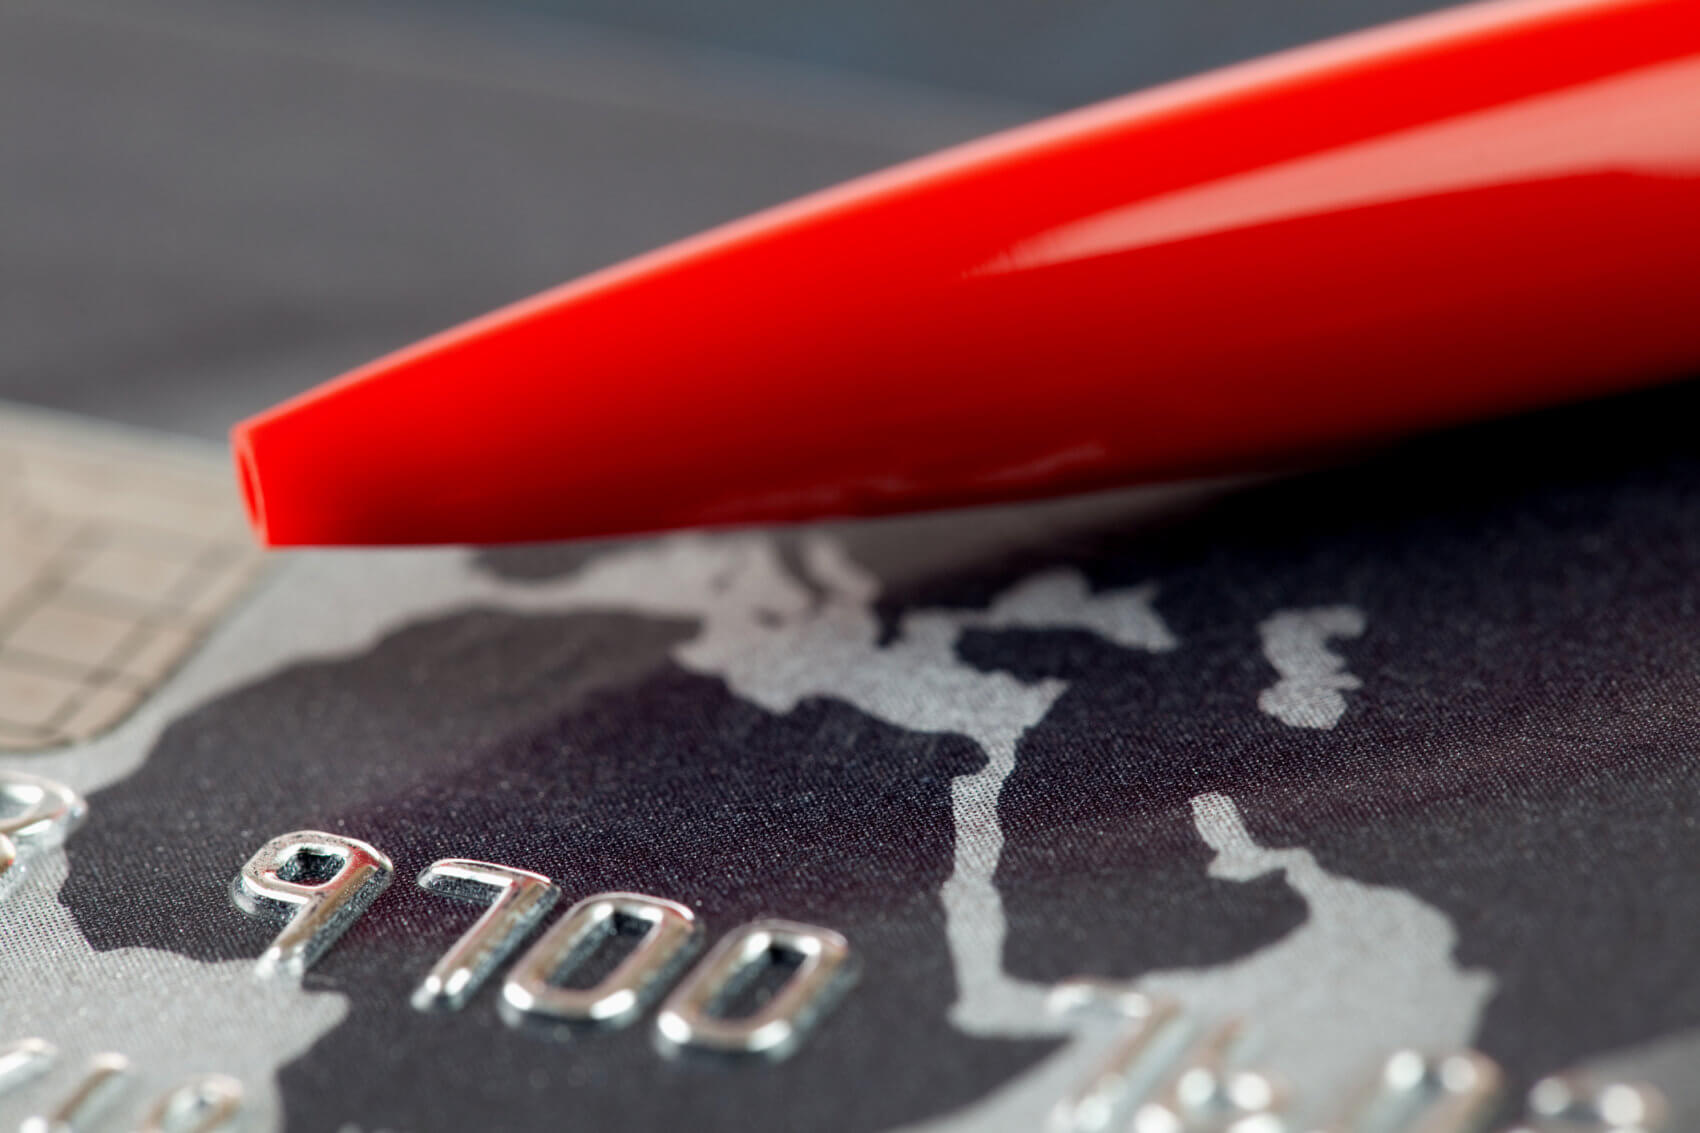 Credit card with Red Pen